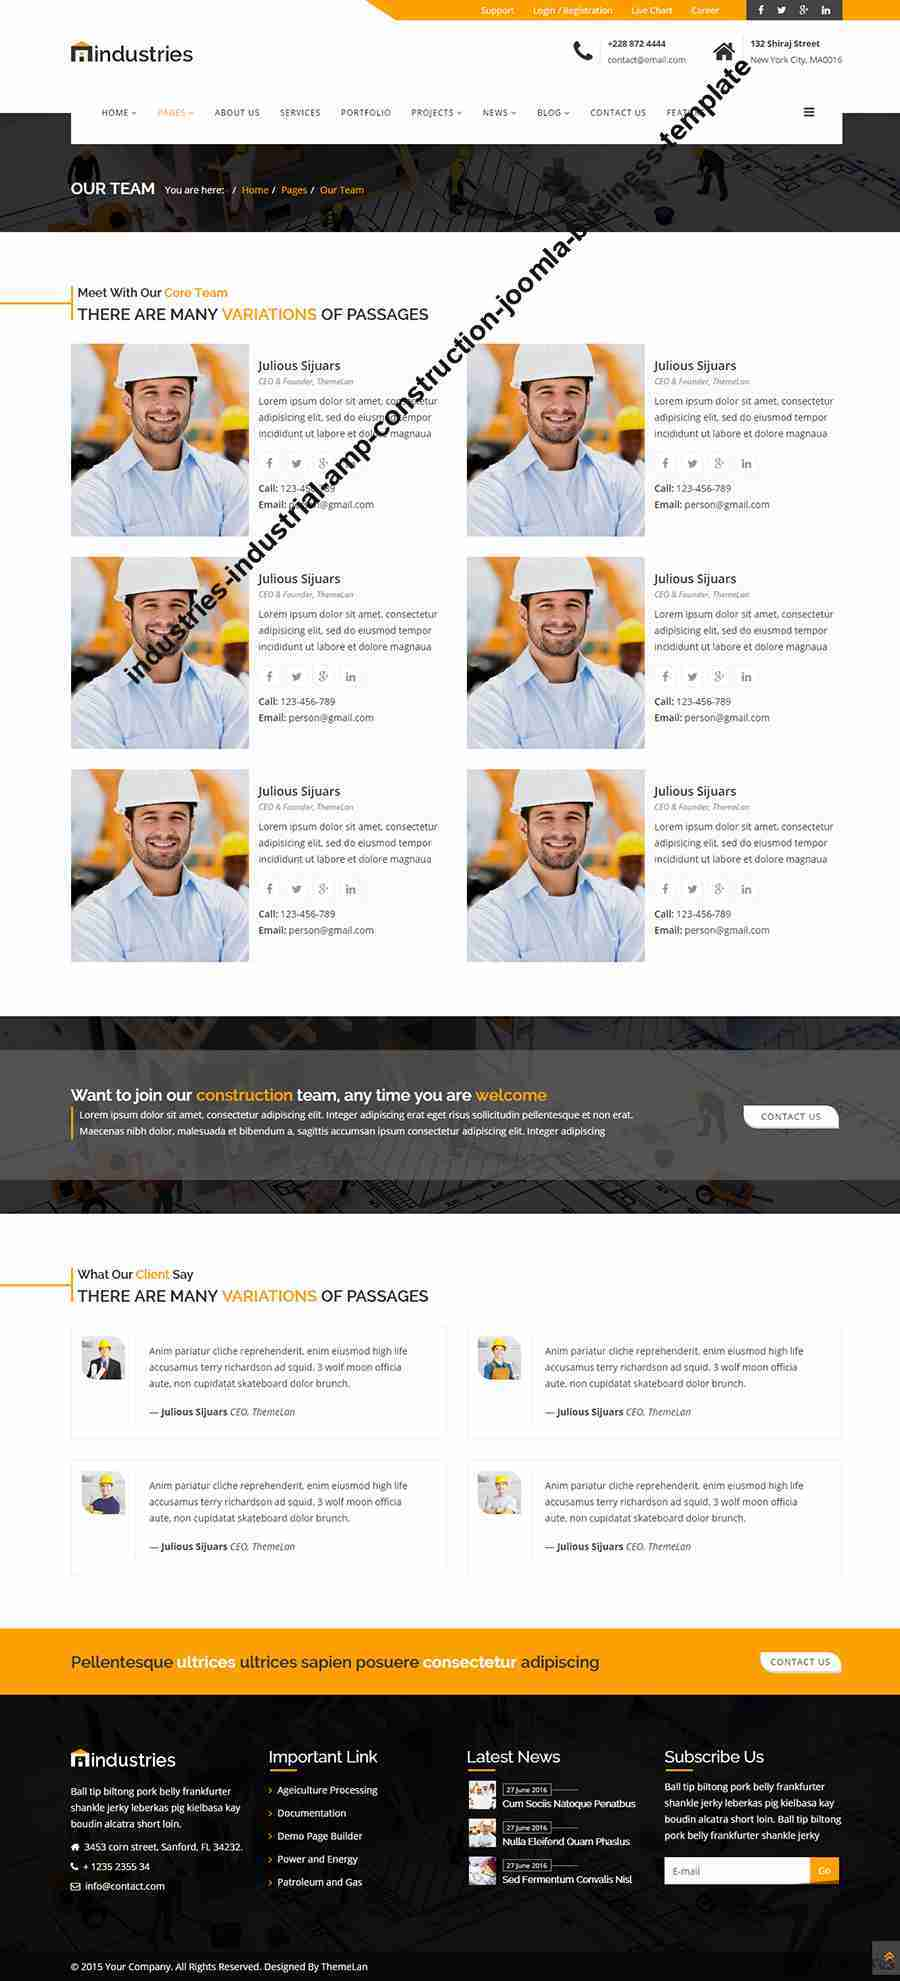 https://images.besthemes.com/images/h1_industries-industrial-amp-construction-joomla-business-template9-_-195277563/09_team.png